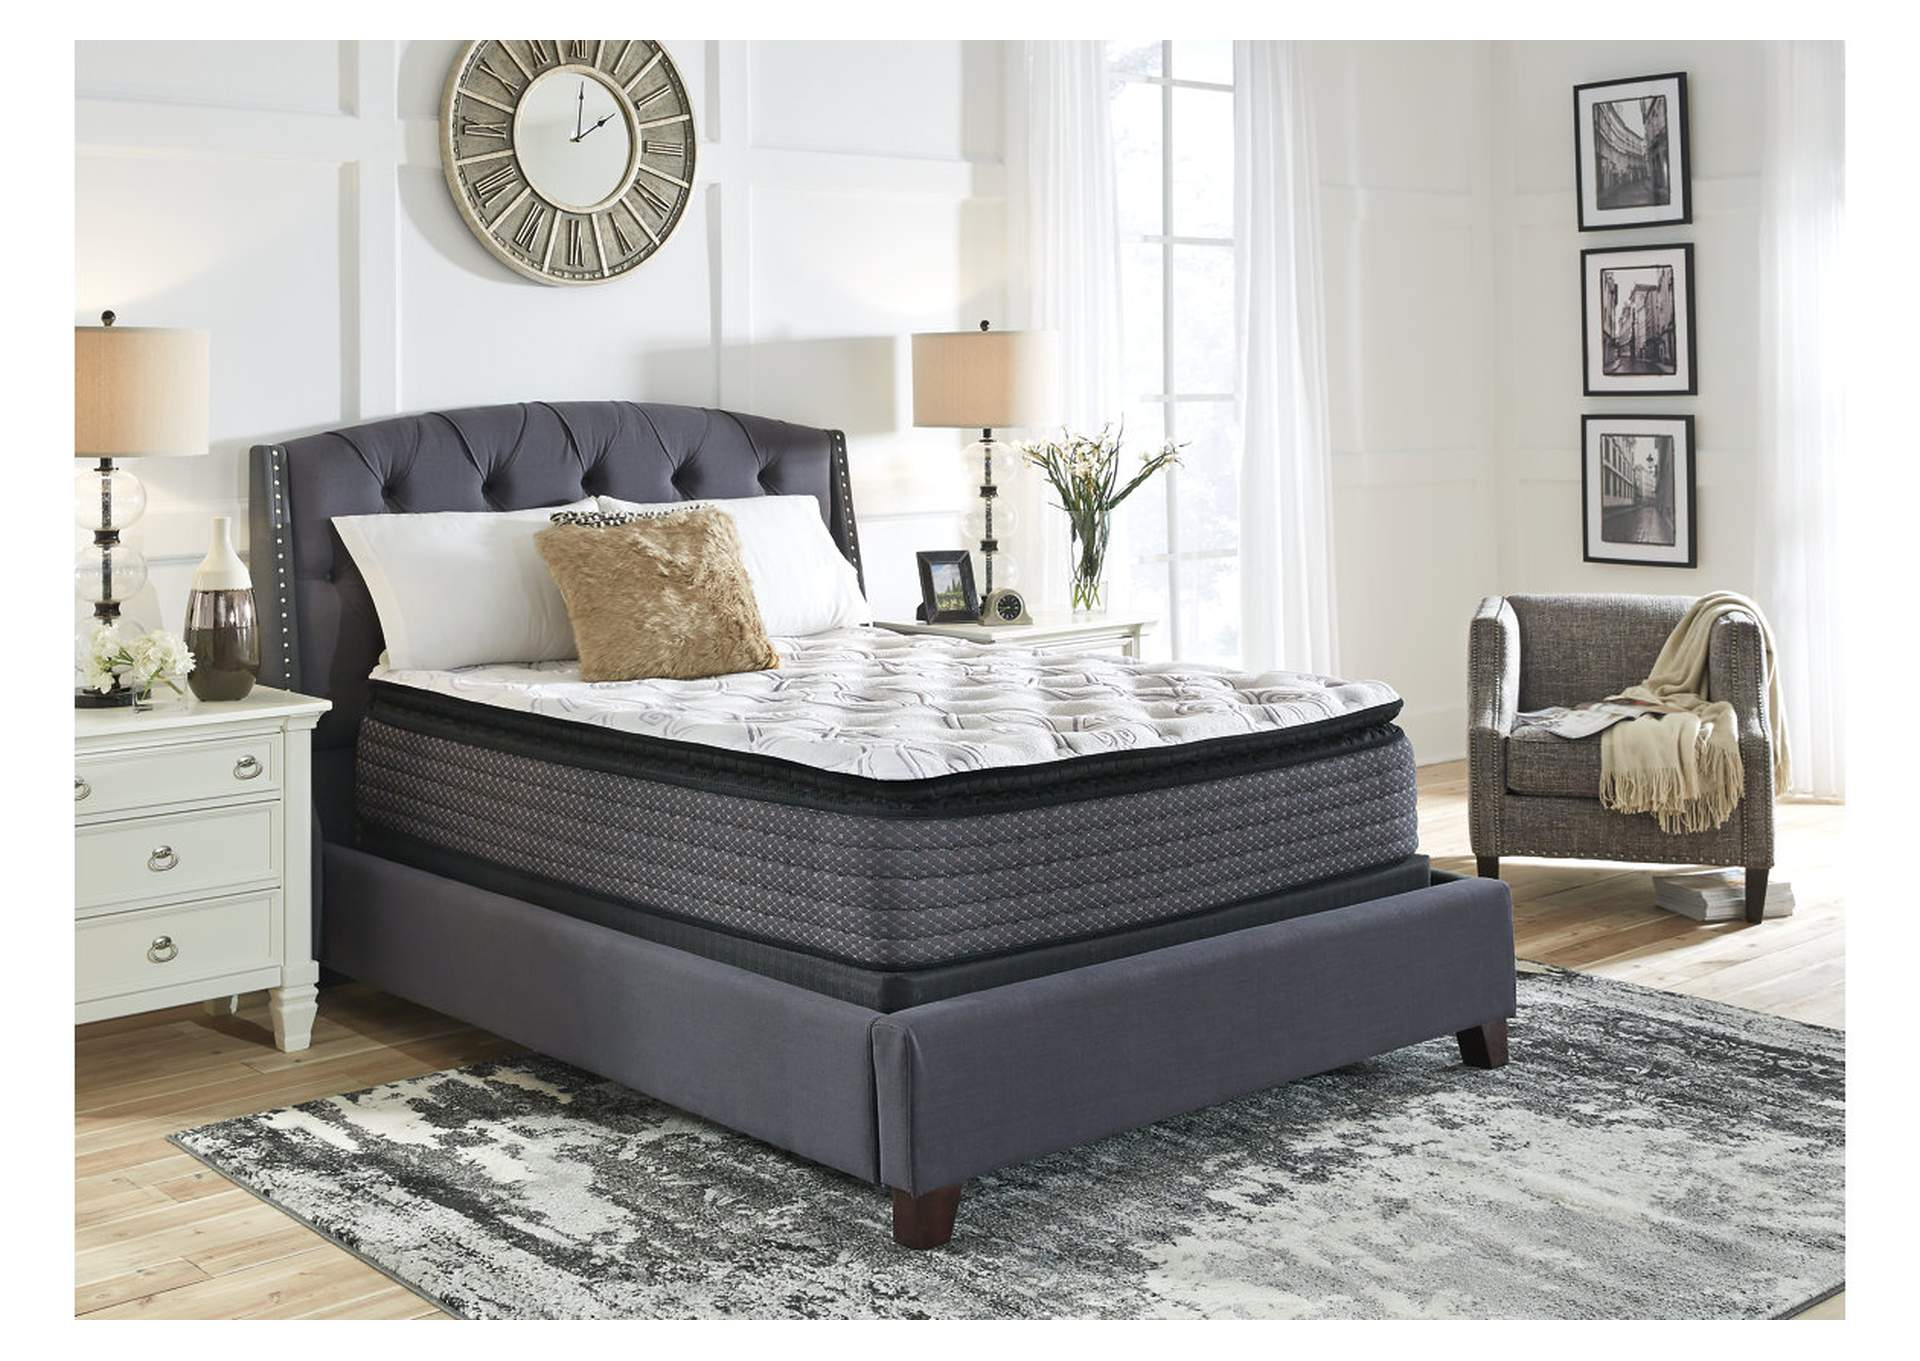 Limited Edition Pillowtop California King Mattress w/Foundation,Sierra Sleep by Ashley